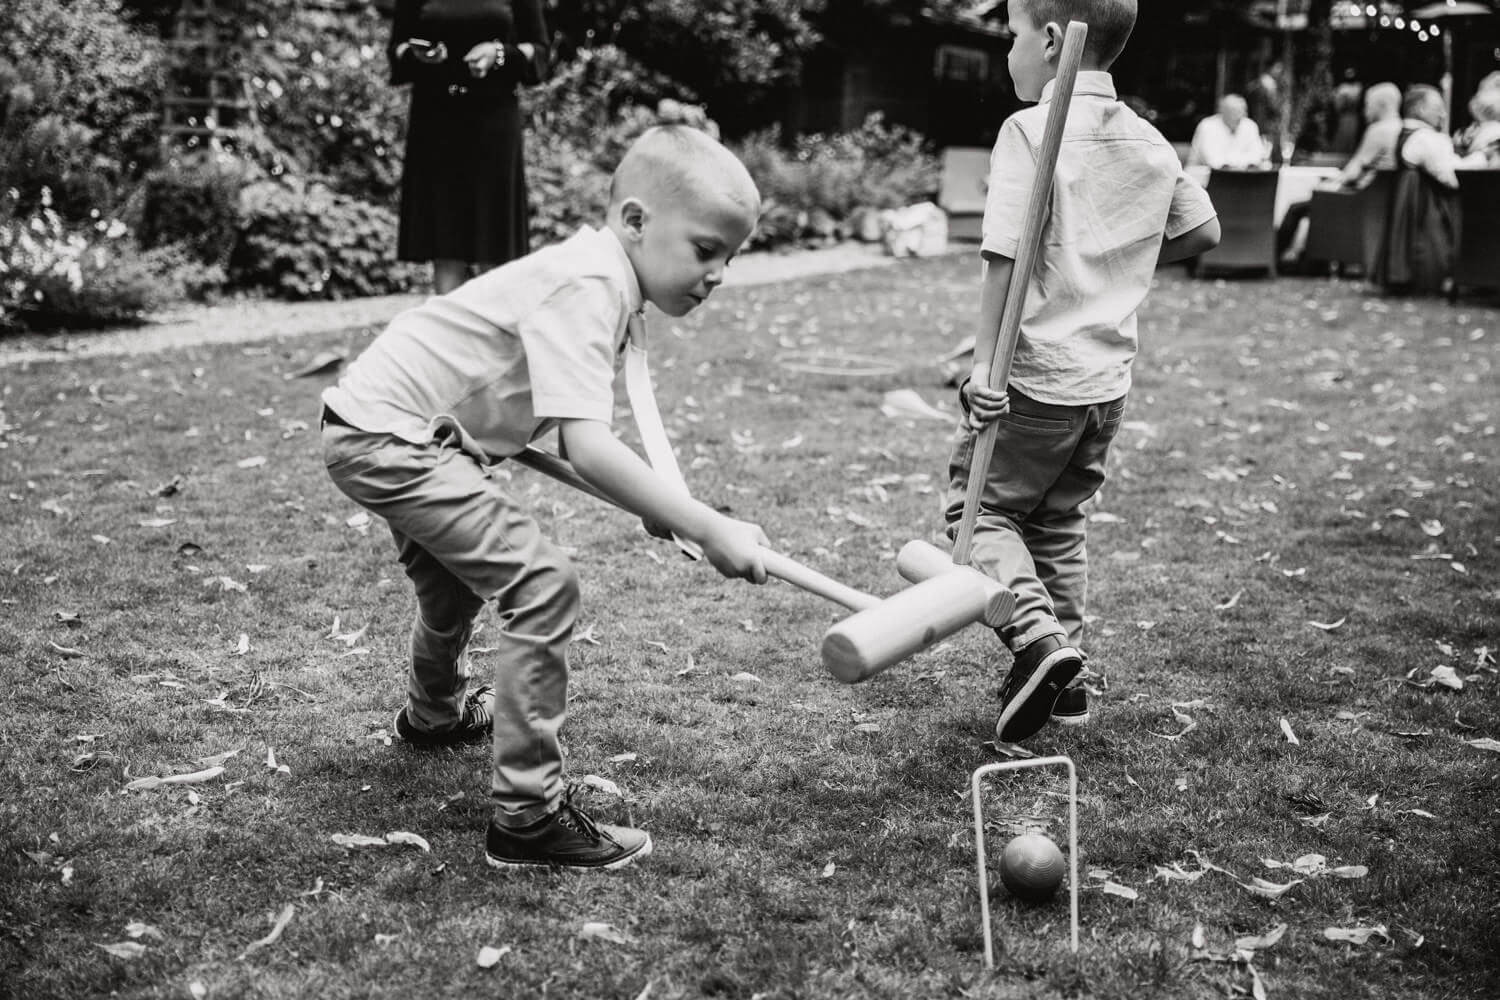 black and white photograph of children playing lawn games